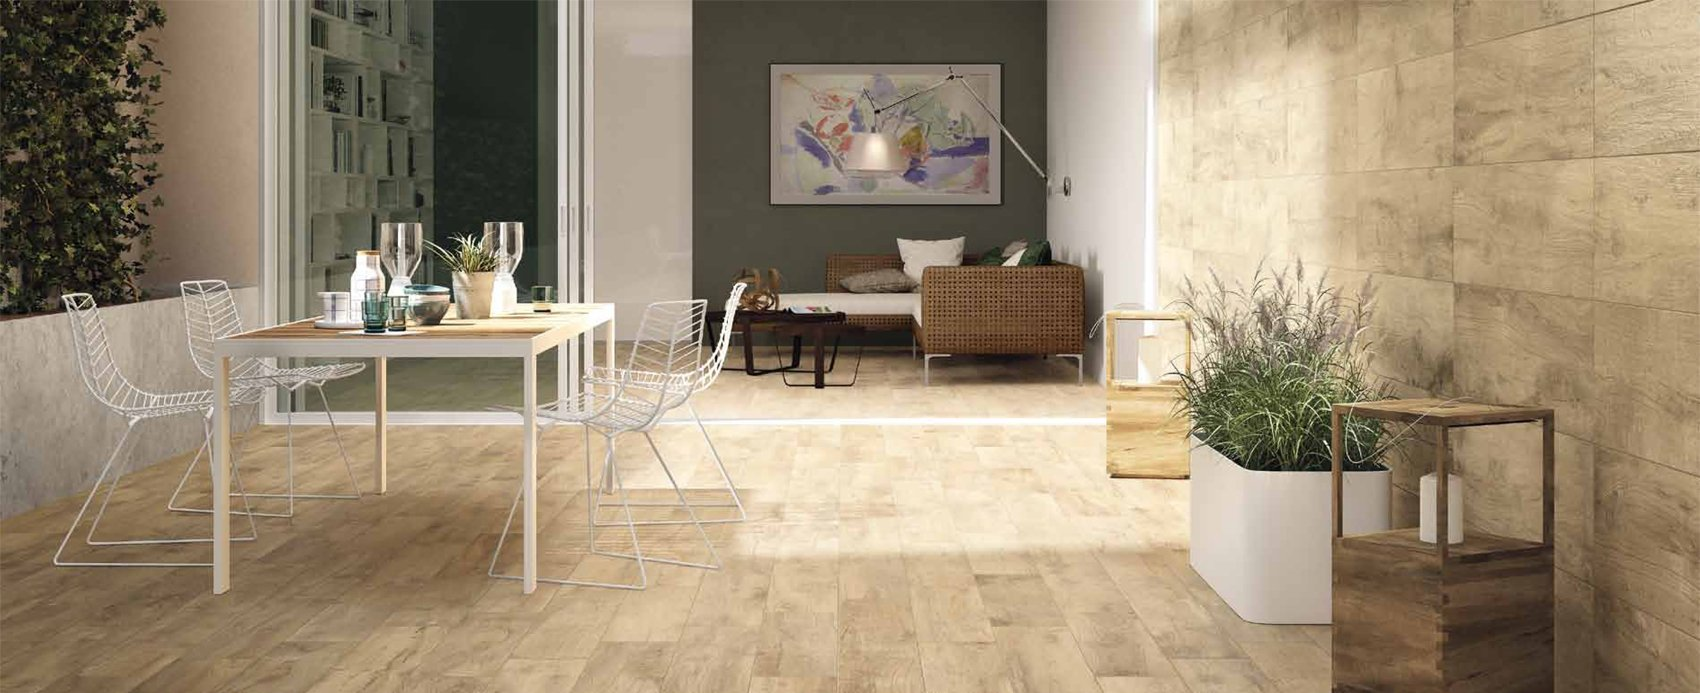 Glass mosaic tile ceramic porcelain tile hardwood floors redefining what it means to shop for tile simple fast quality dailygadgetfo Gallery